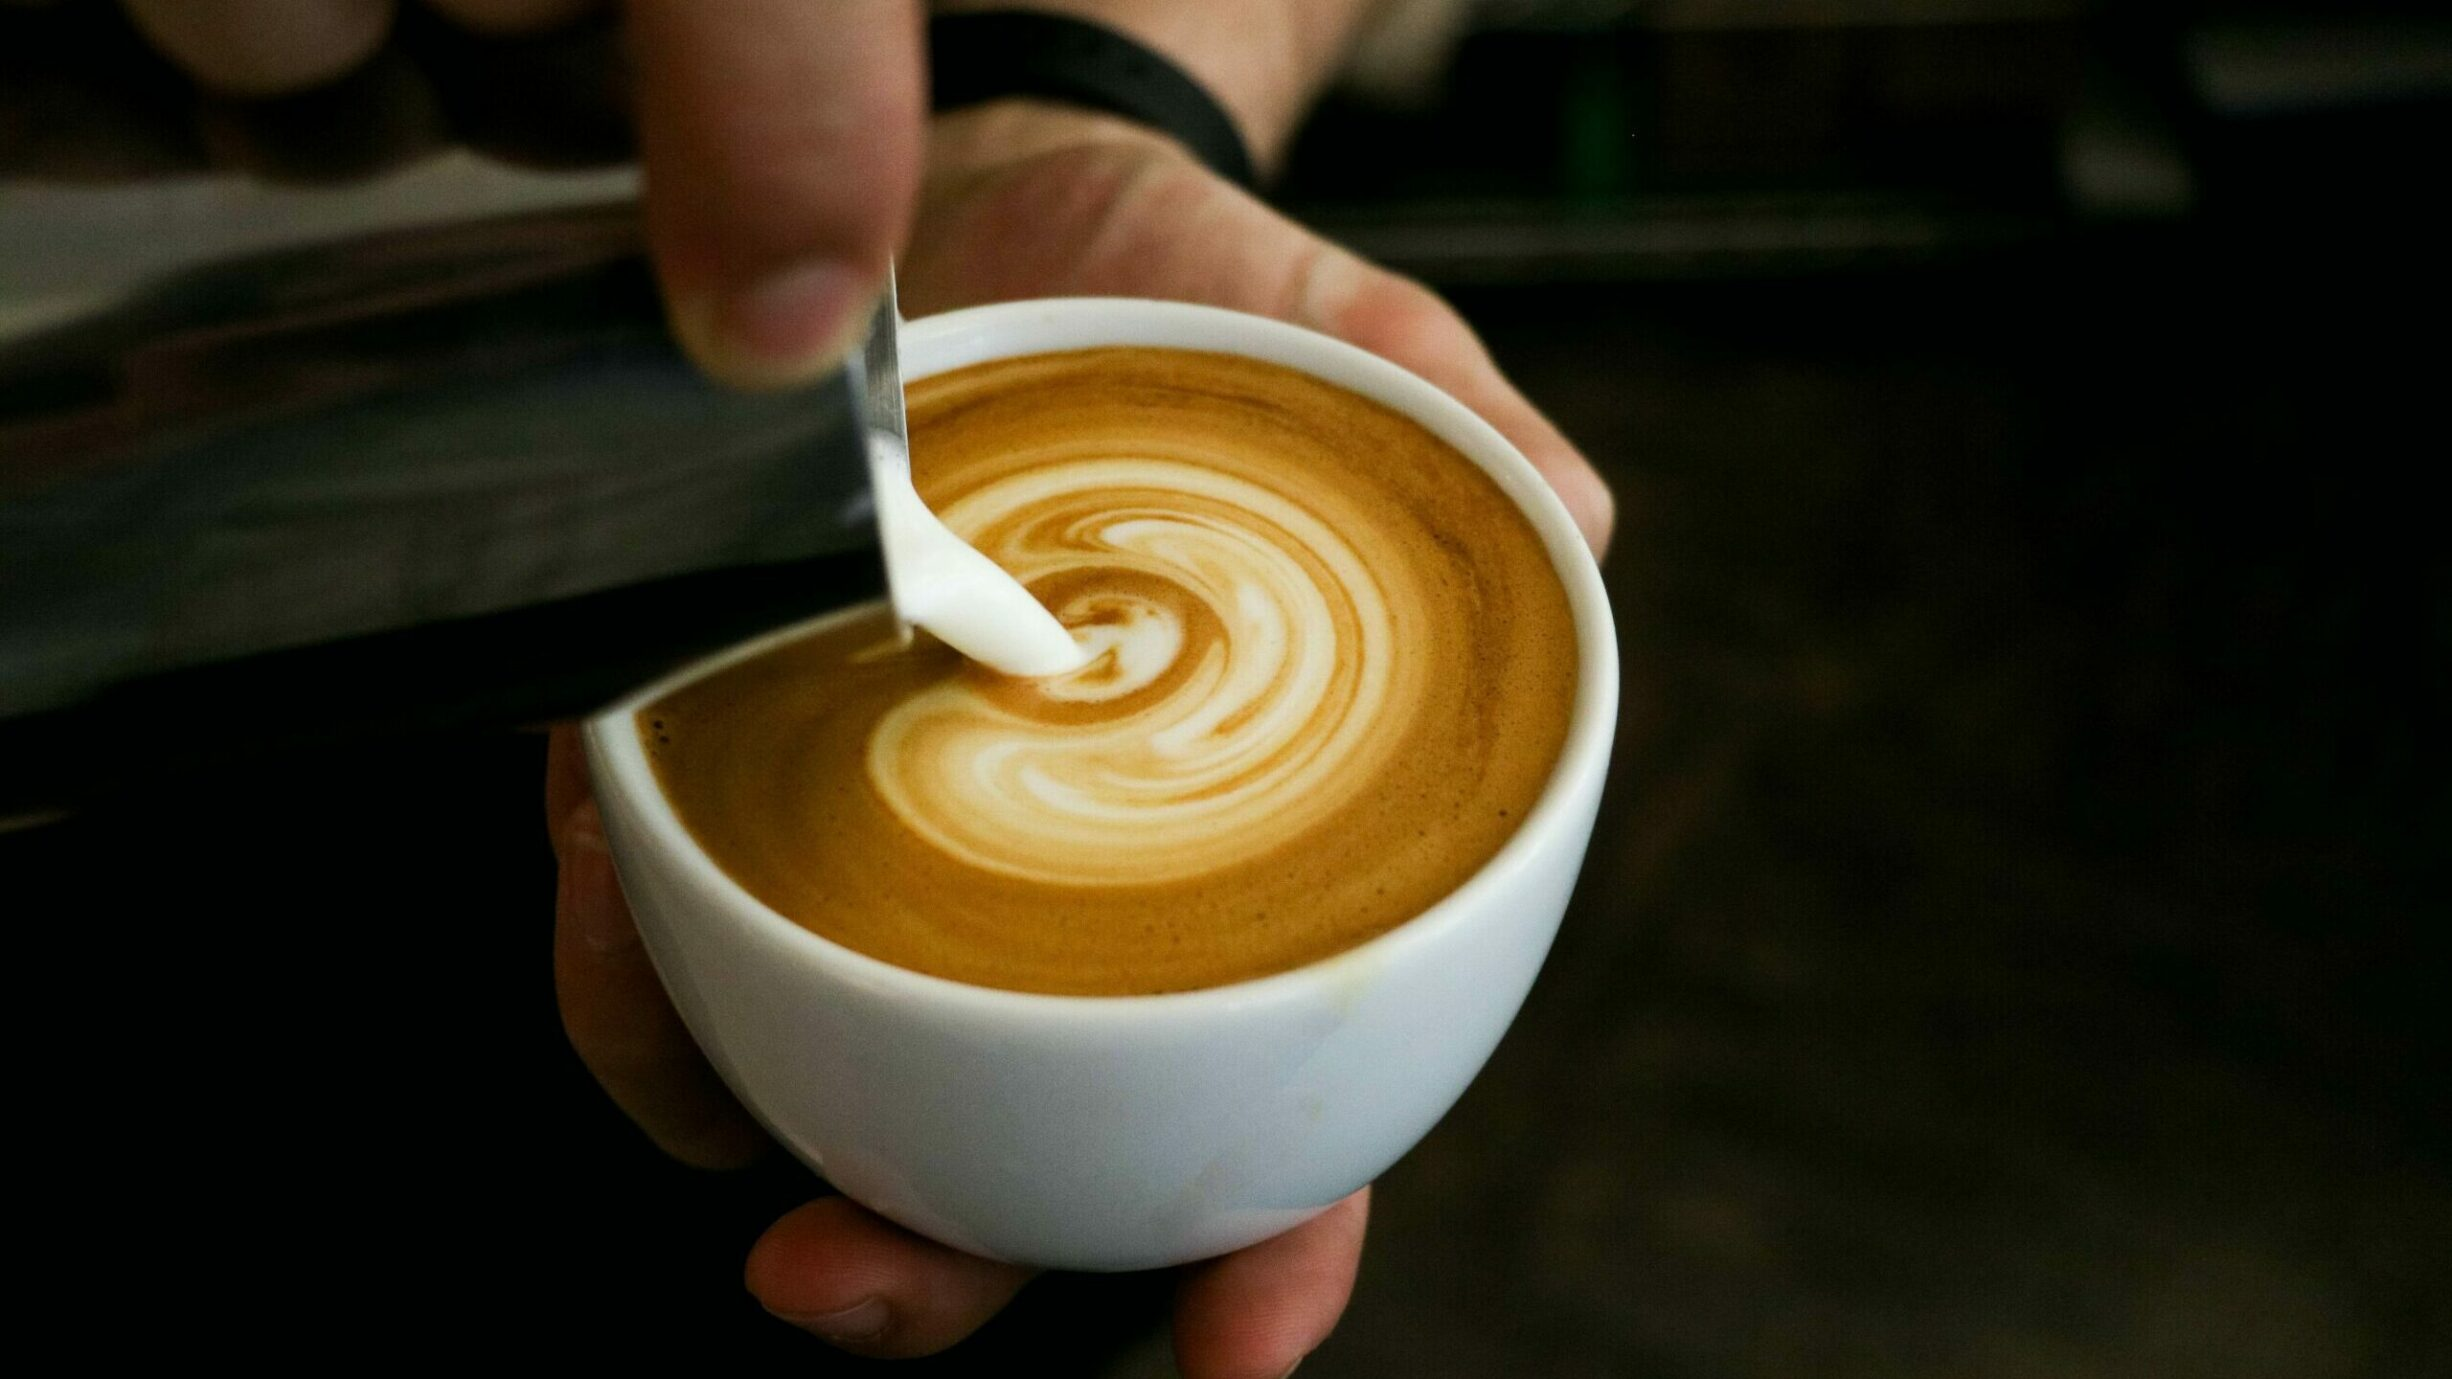 pouring steamed milk into a cup of espresso